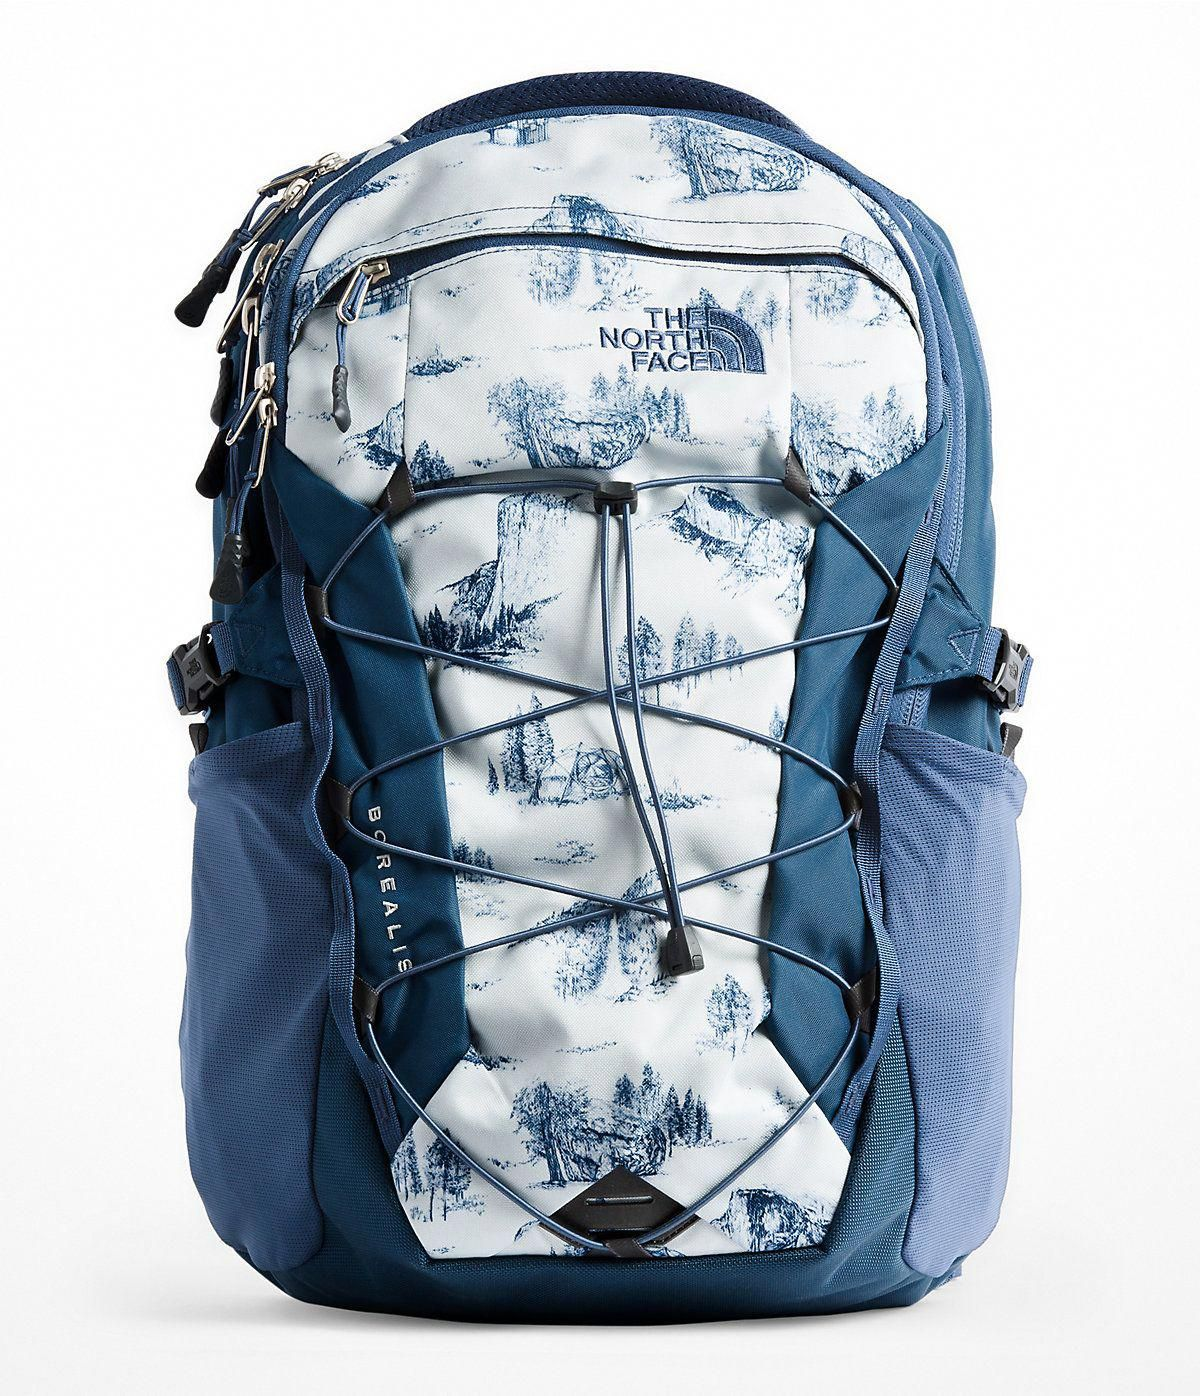 The North Face Borealis Backpack | Free Shipping, Free Returns #backpacks